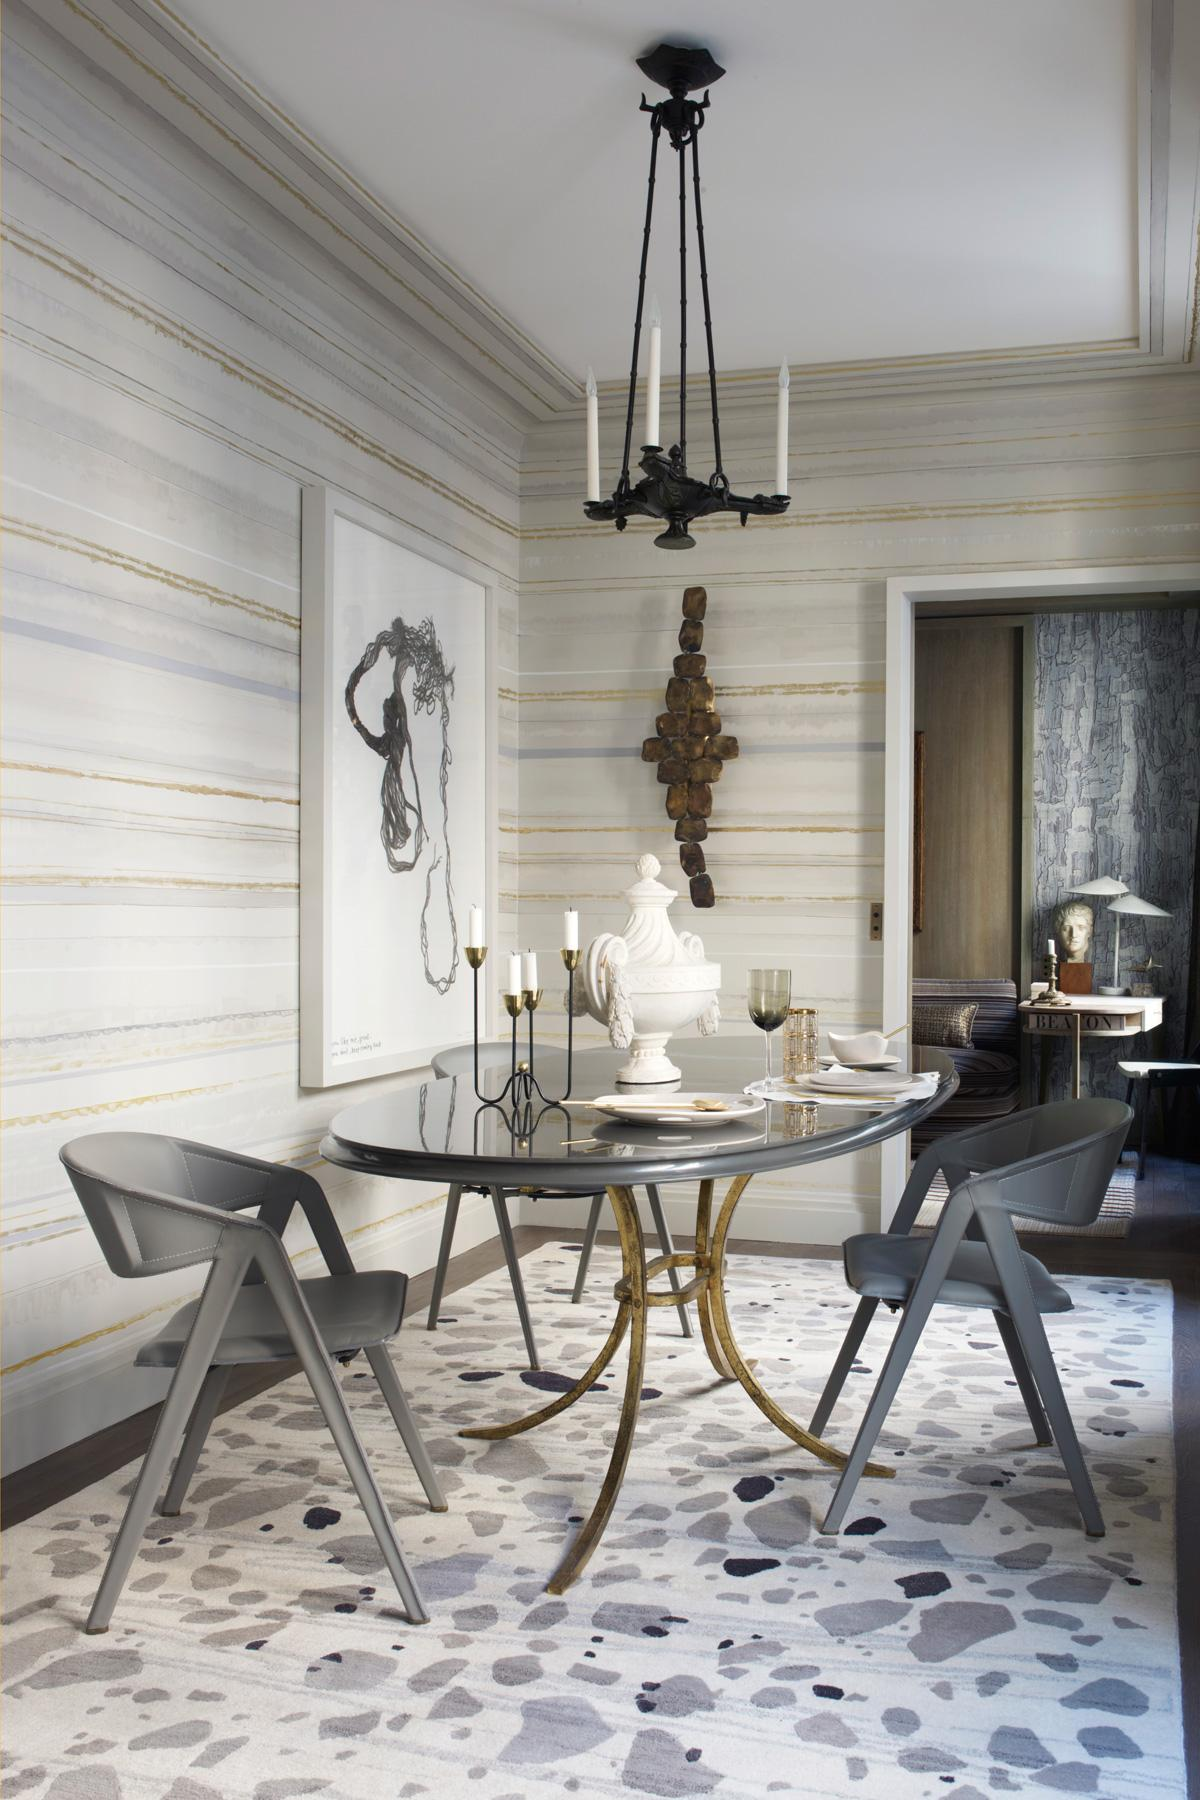 10 Dining Room Ideas To Inspire Yourself By Elle D Cor Dining Room Ideas